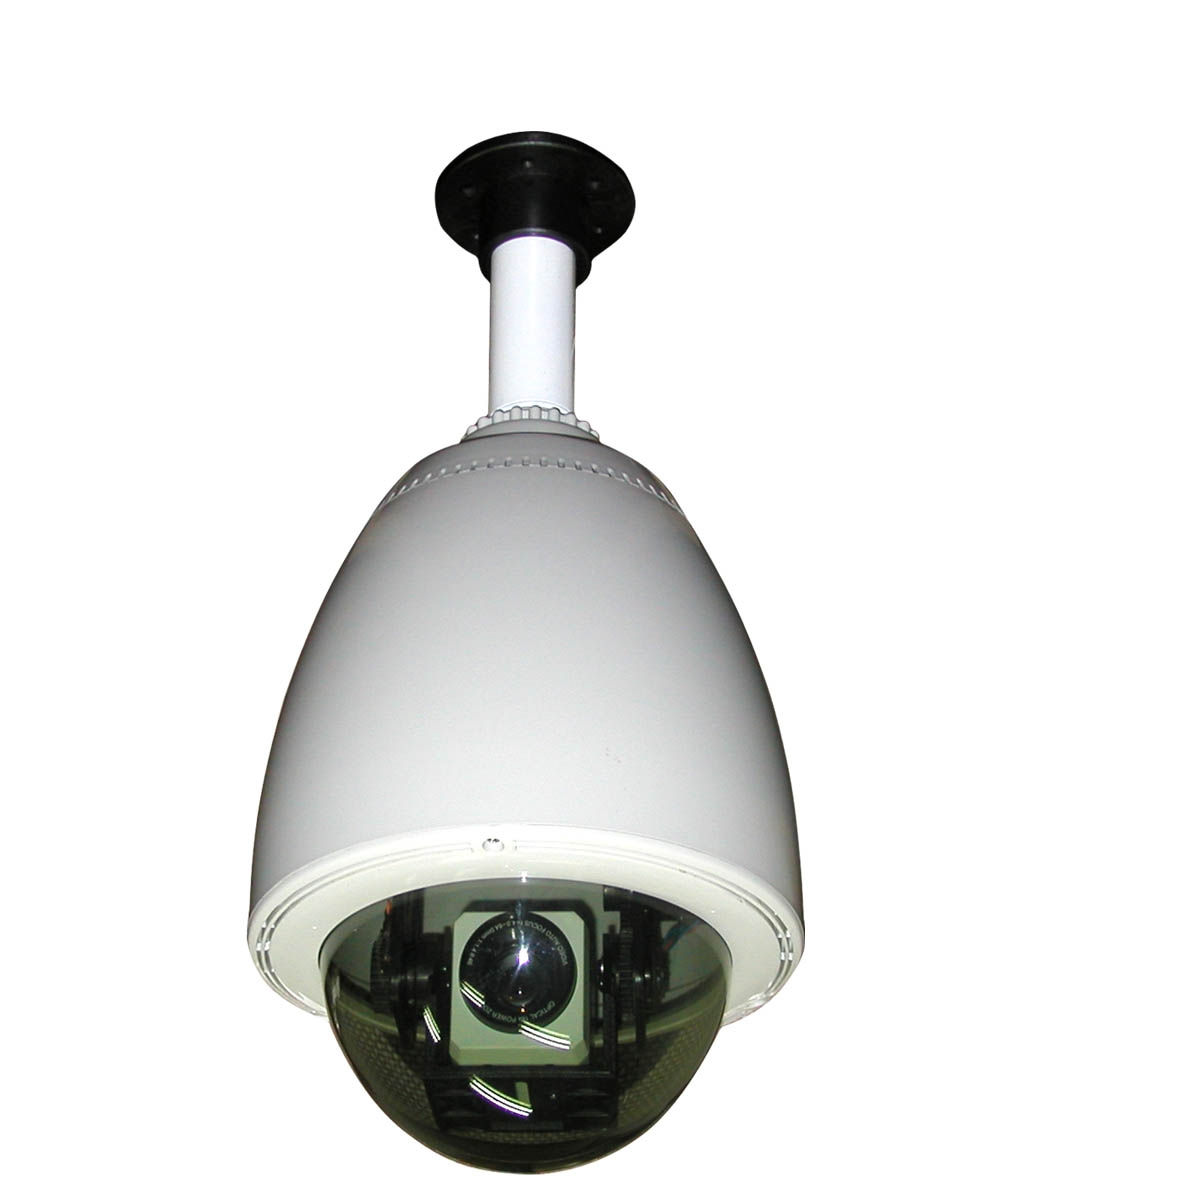 IP-PTZC Weatherproof IP Color High Resolution PTZ Camera with Ceiling Mount